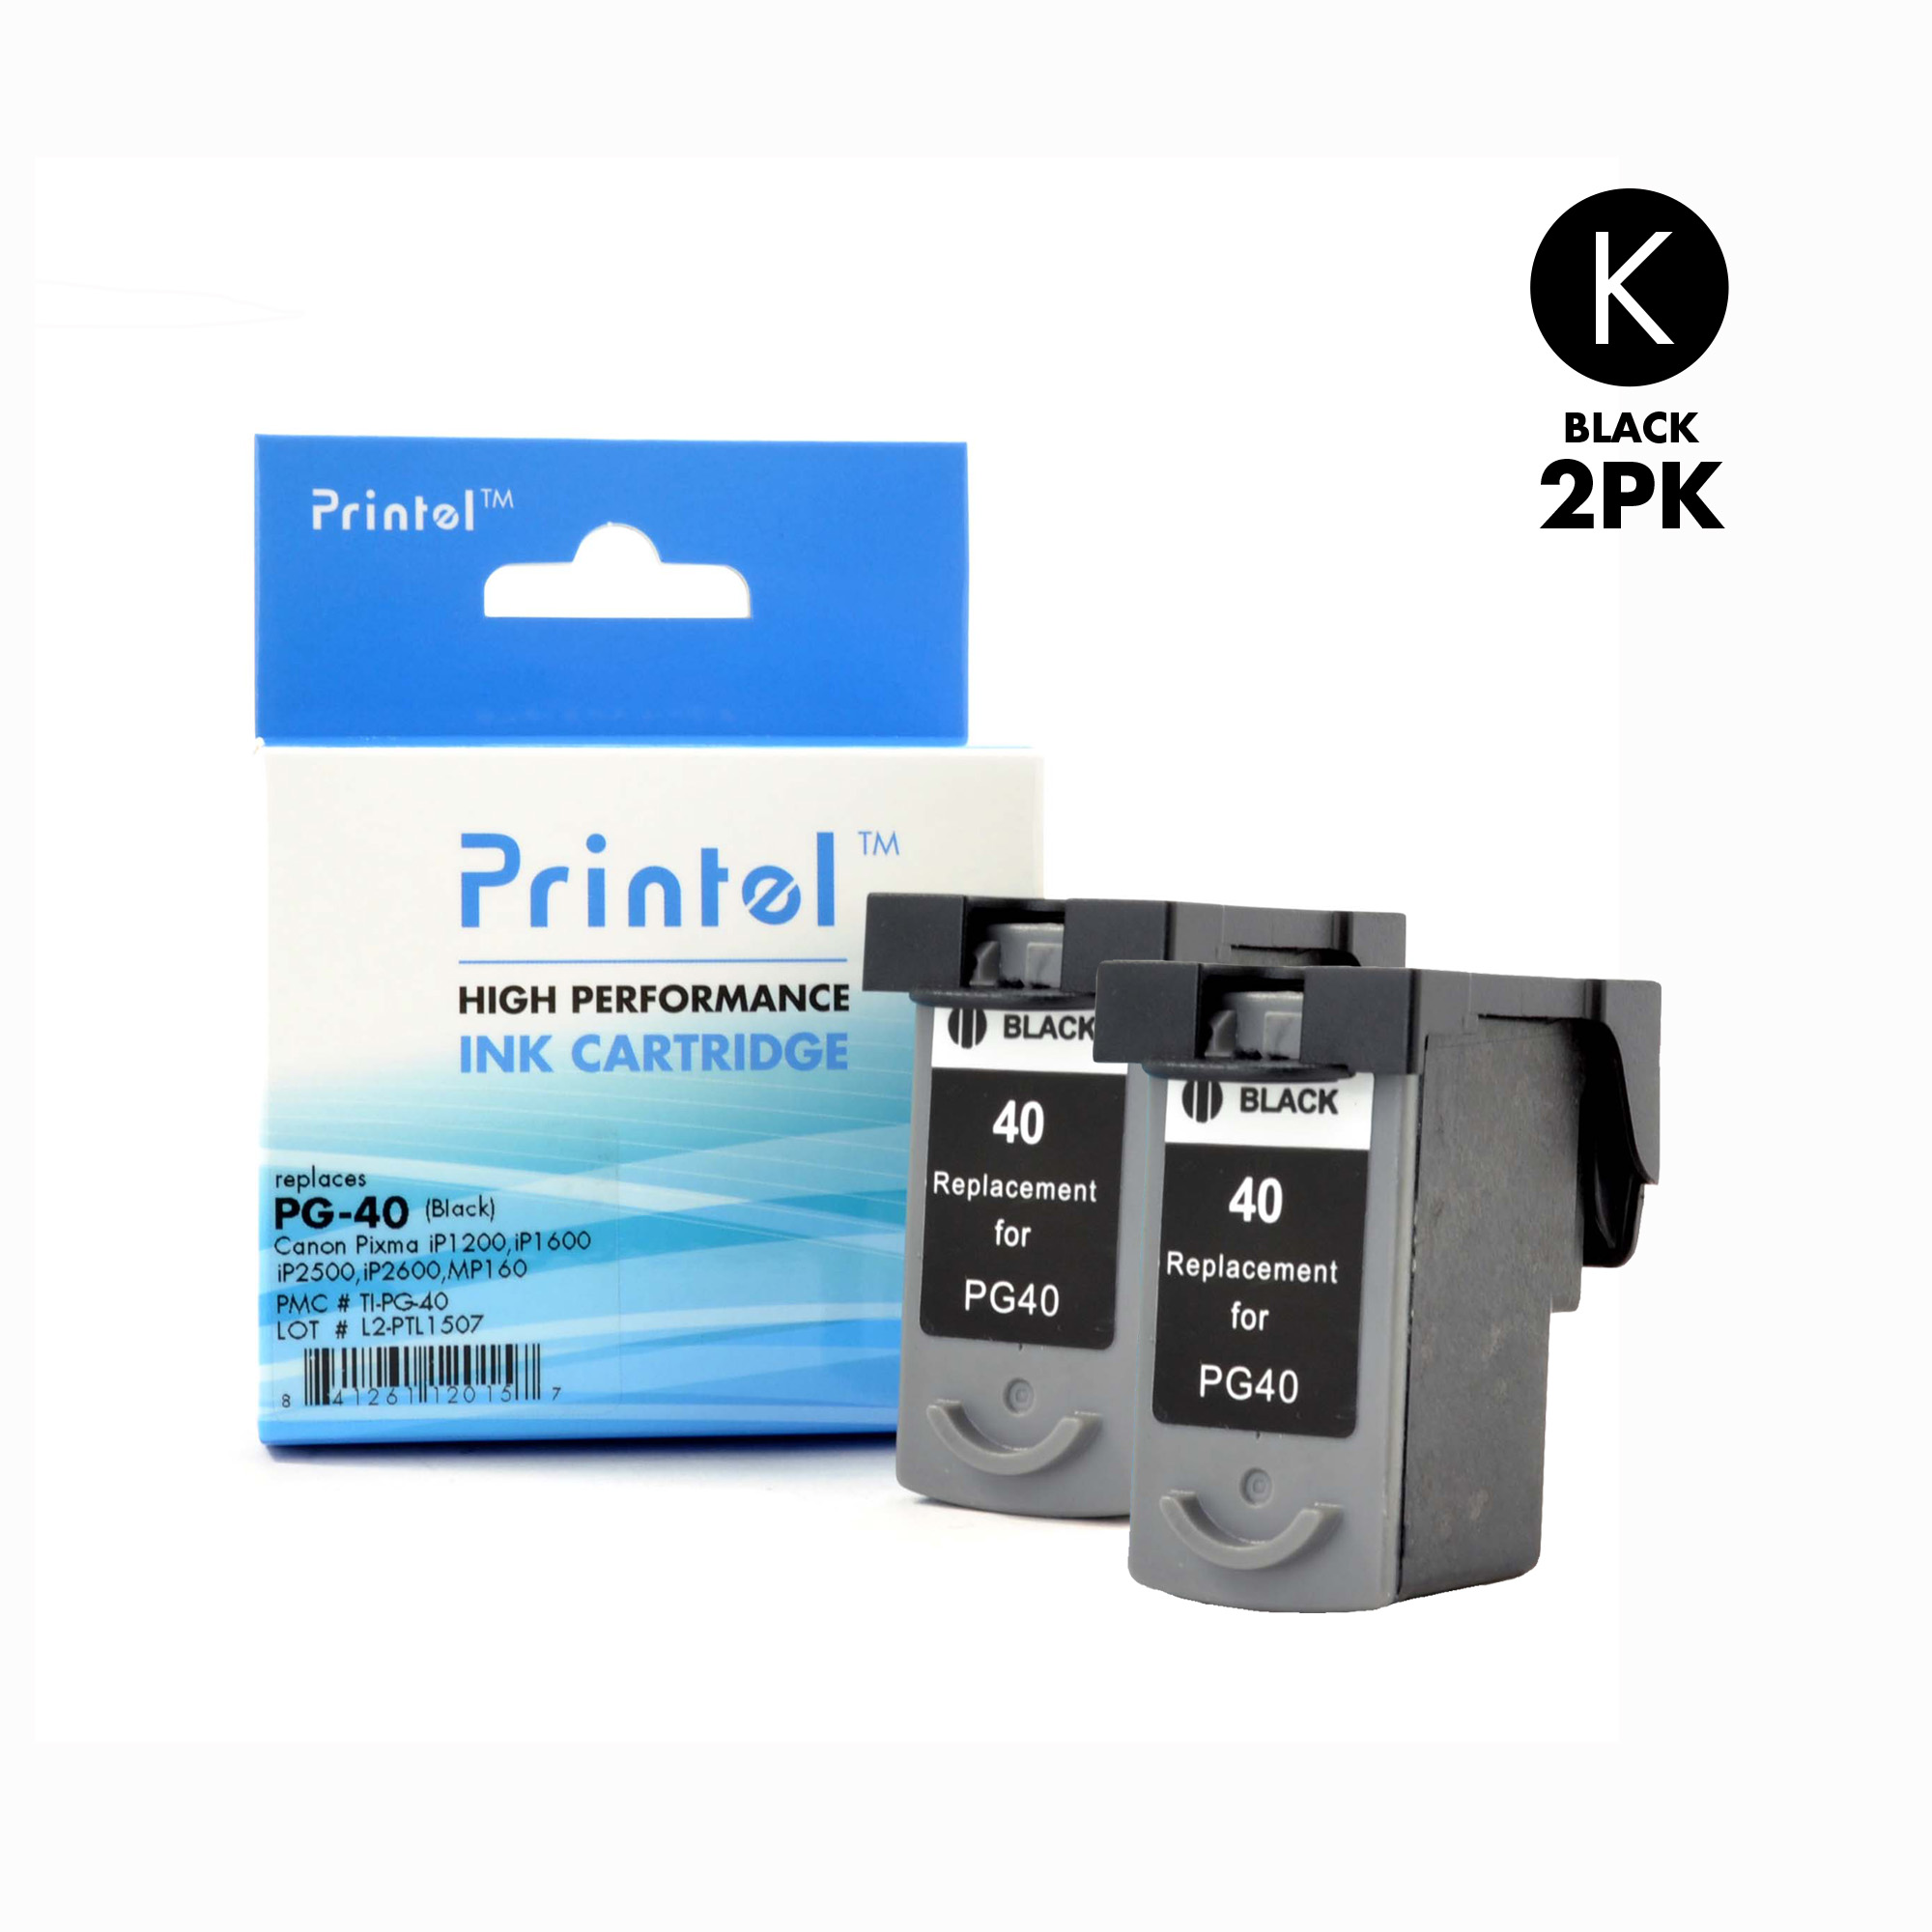 Ink Cartridge Partsmart Canon Cl 57 Original Pg 40 2 Pack Inkjet Replacement For Pixma Fax Jx200 Ip1180 Ip1200 By Printel